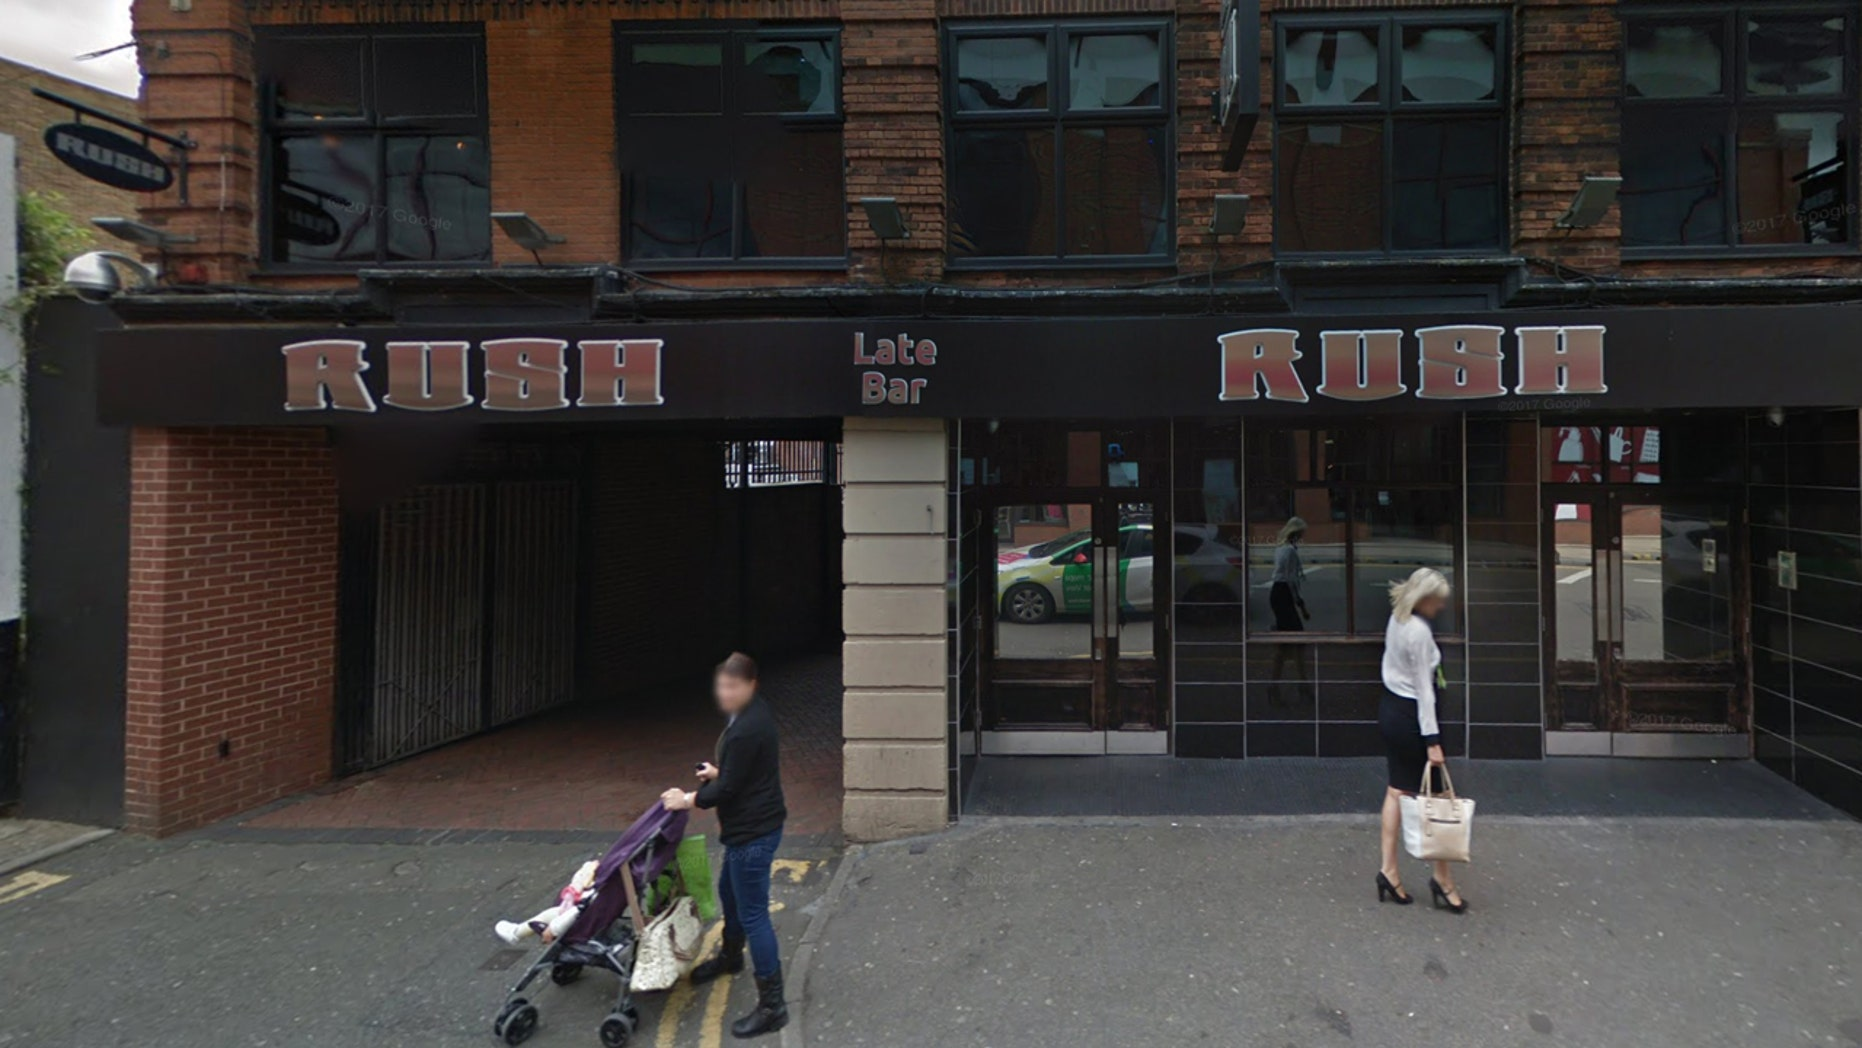 A man claims Rush Late Bar in the U.K. made him leave because he was wearing a turban.